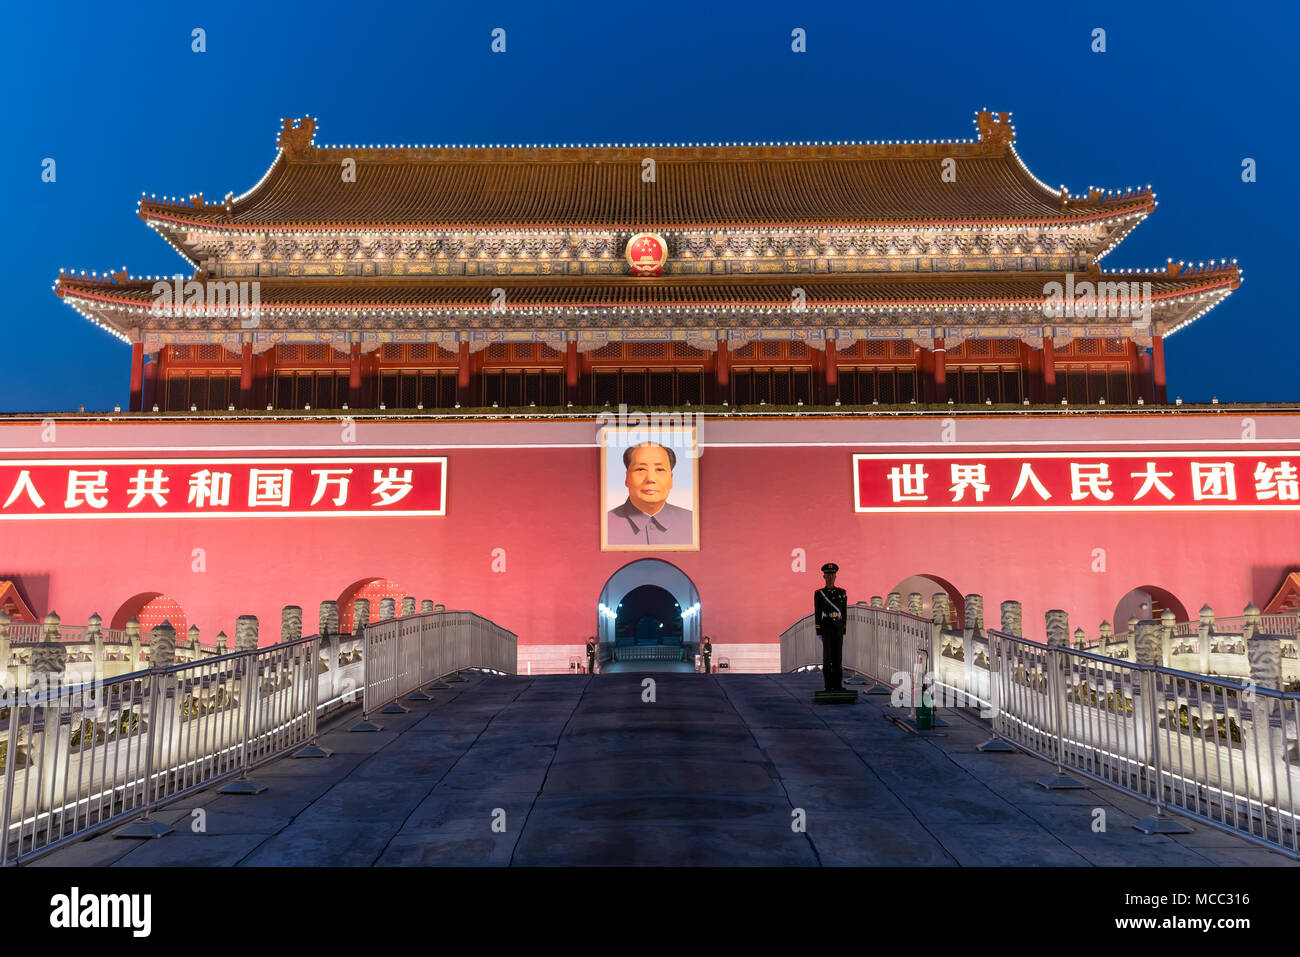 Beijing China Mar 23 2018 Tiananmen In Beijing At Night Also